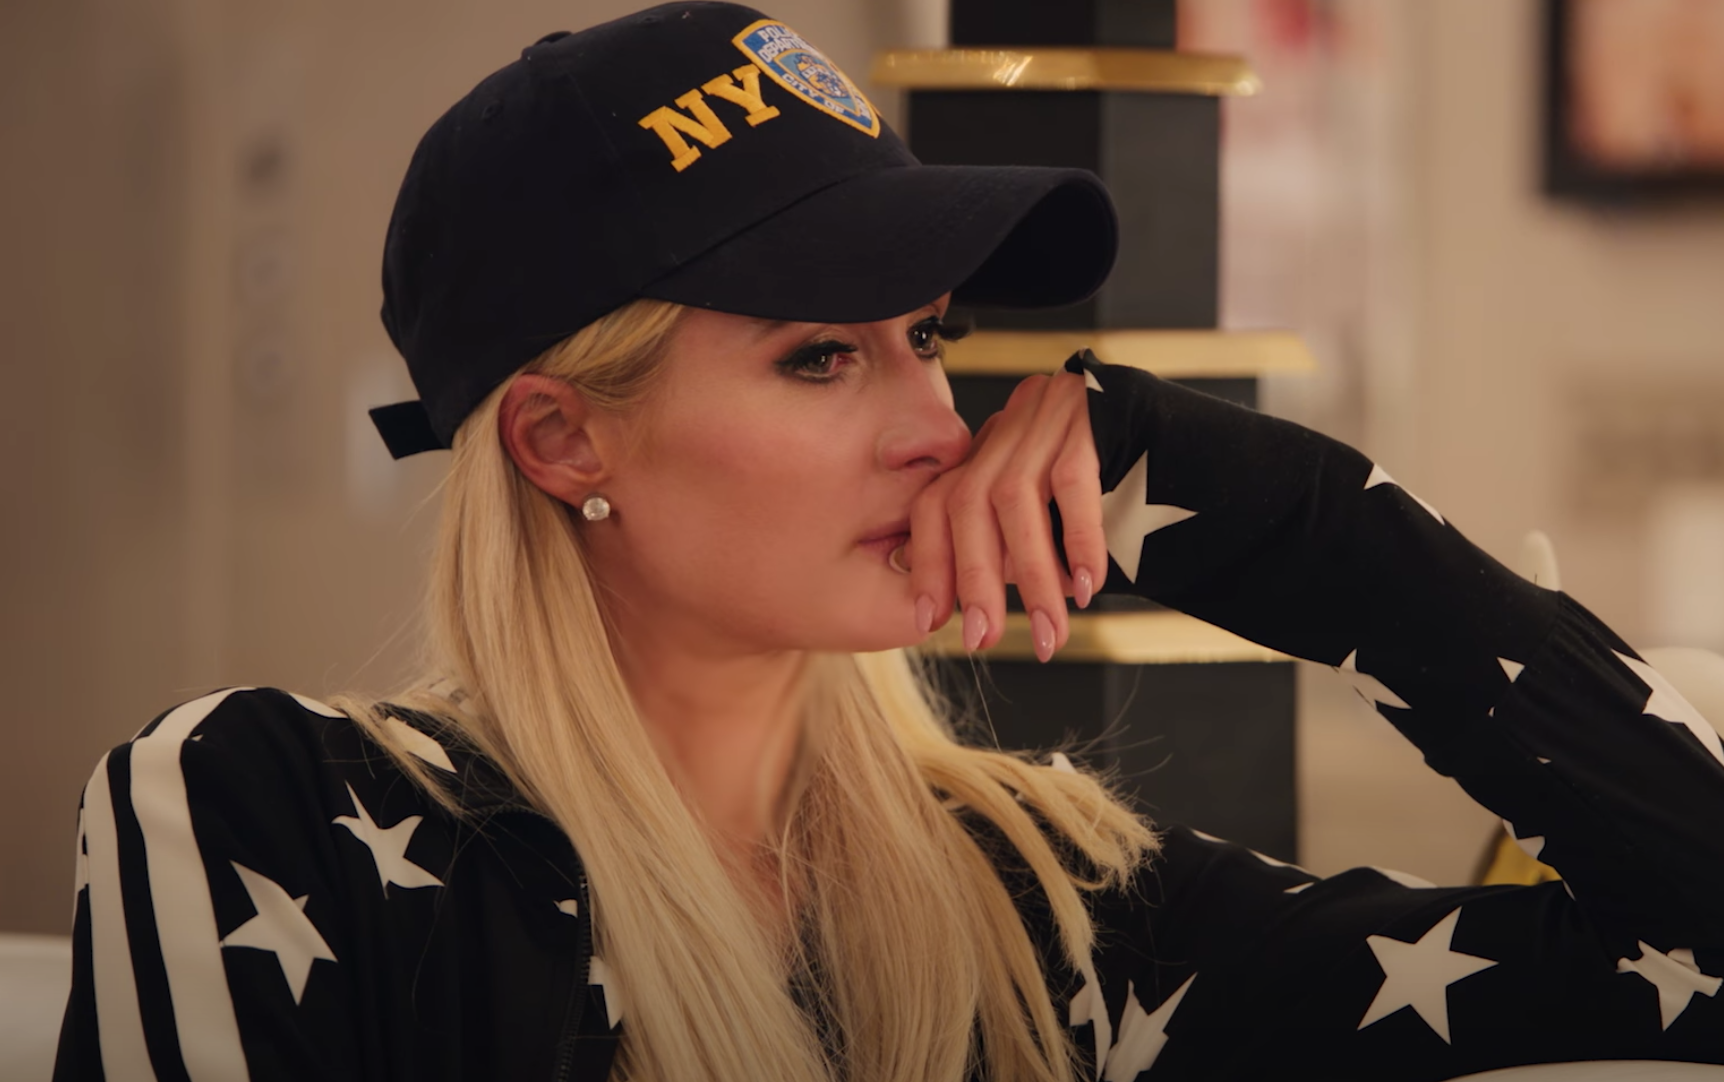 Paris Hilton opens up about childhood trauma in new YouTube documentary